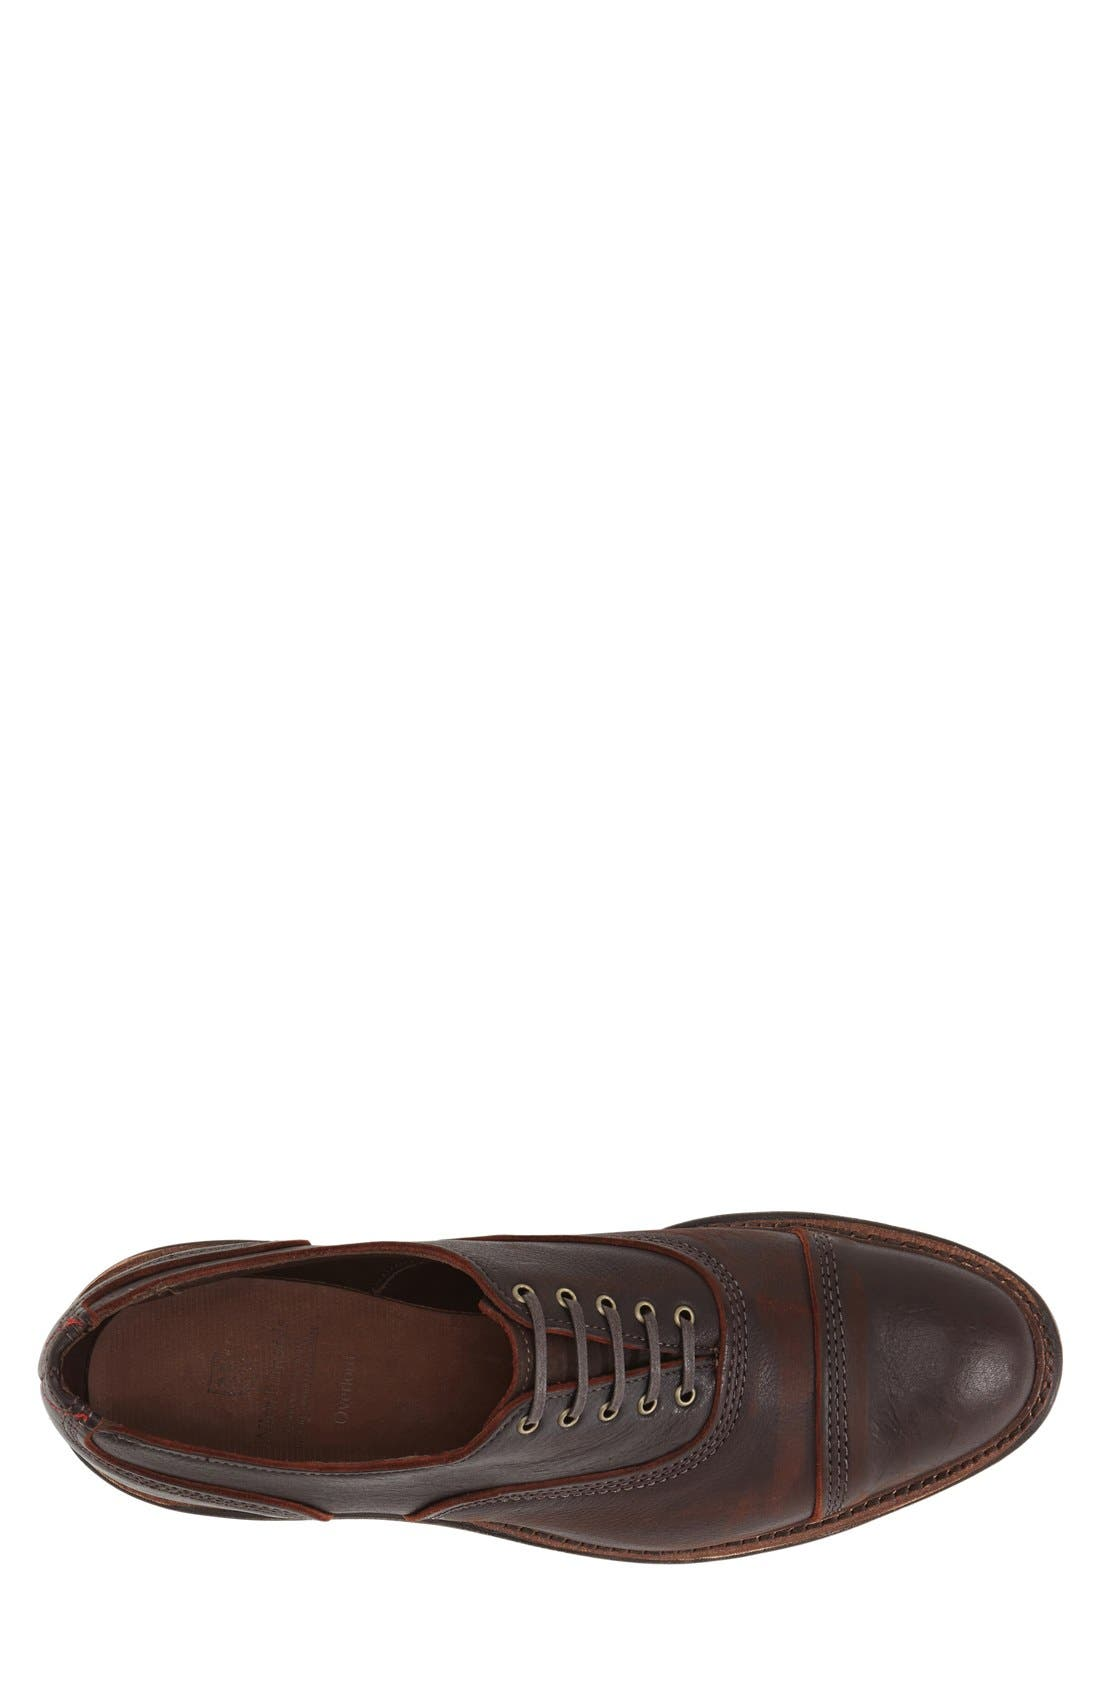 Alternate Image 3  - Allen Edmonds 'Overlord' Water Resistant Cap Toe Oxford (Men)